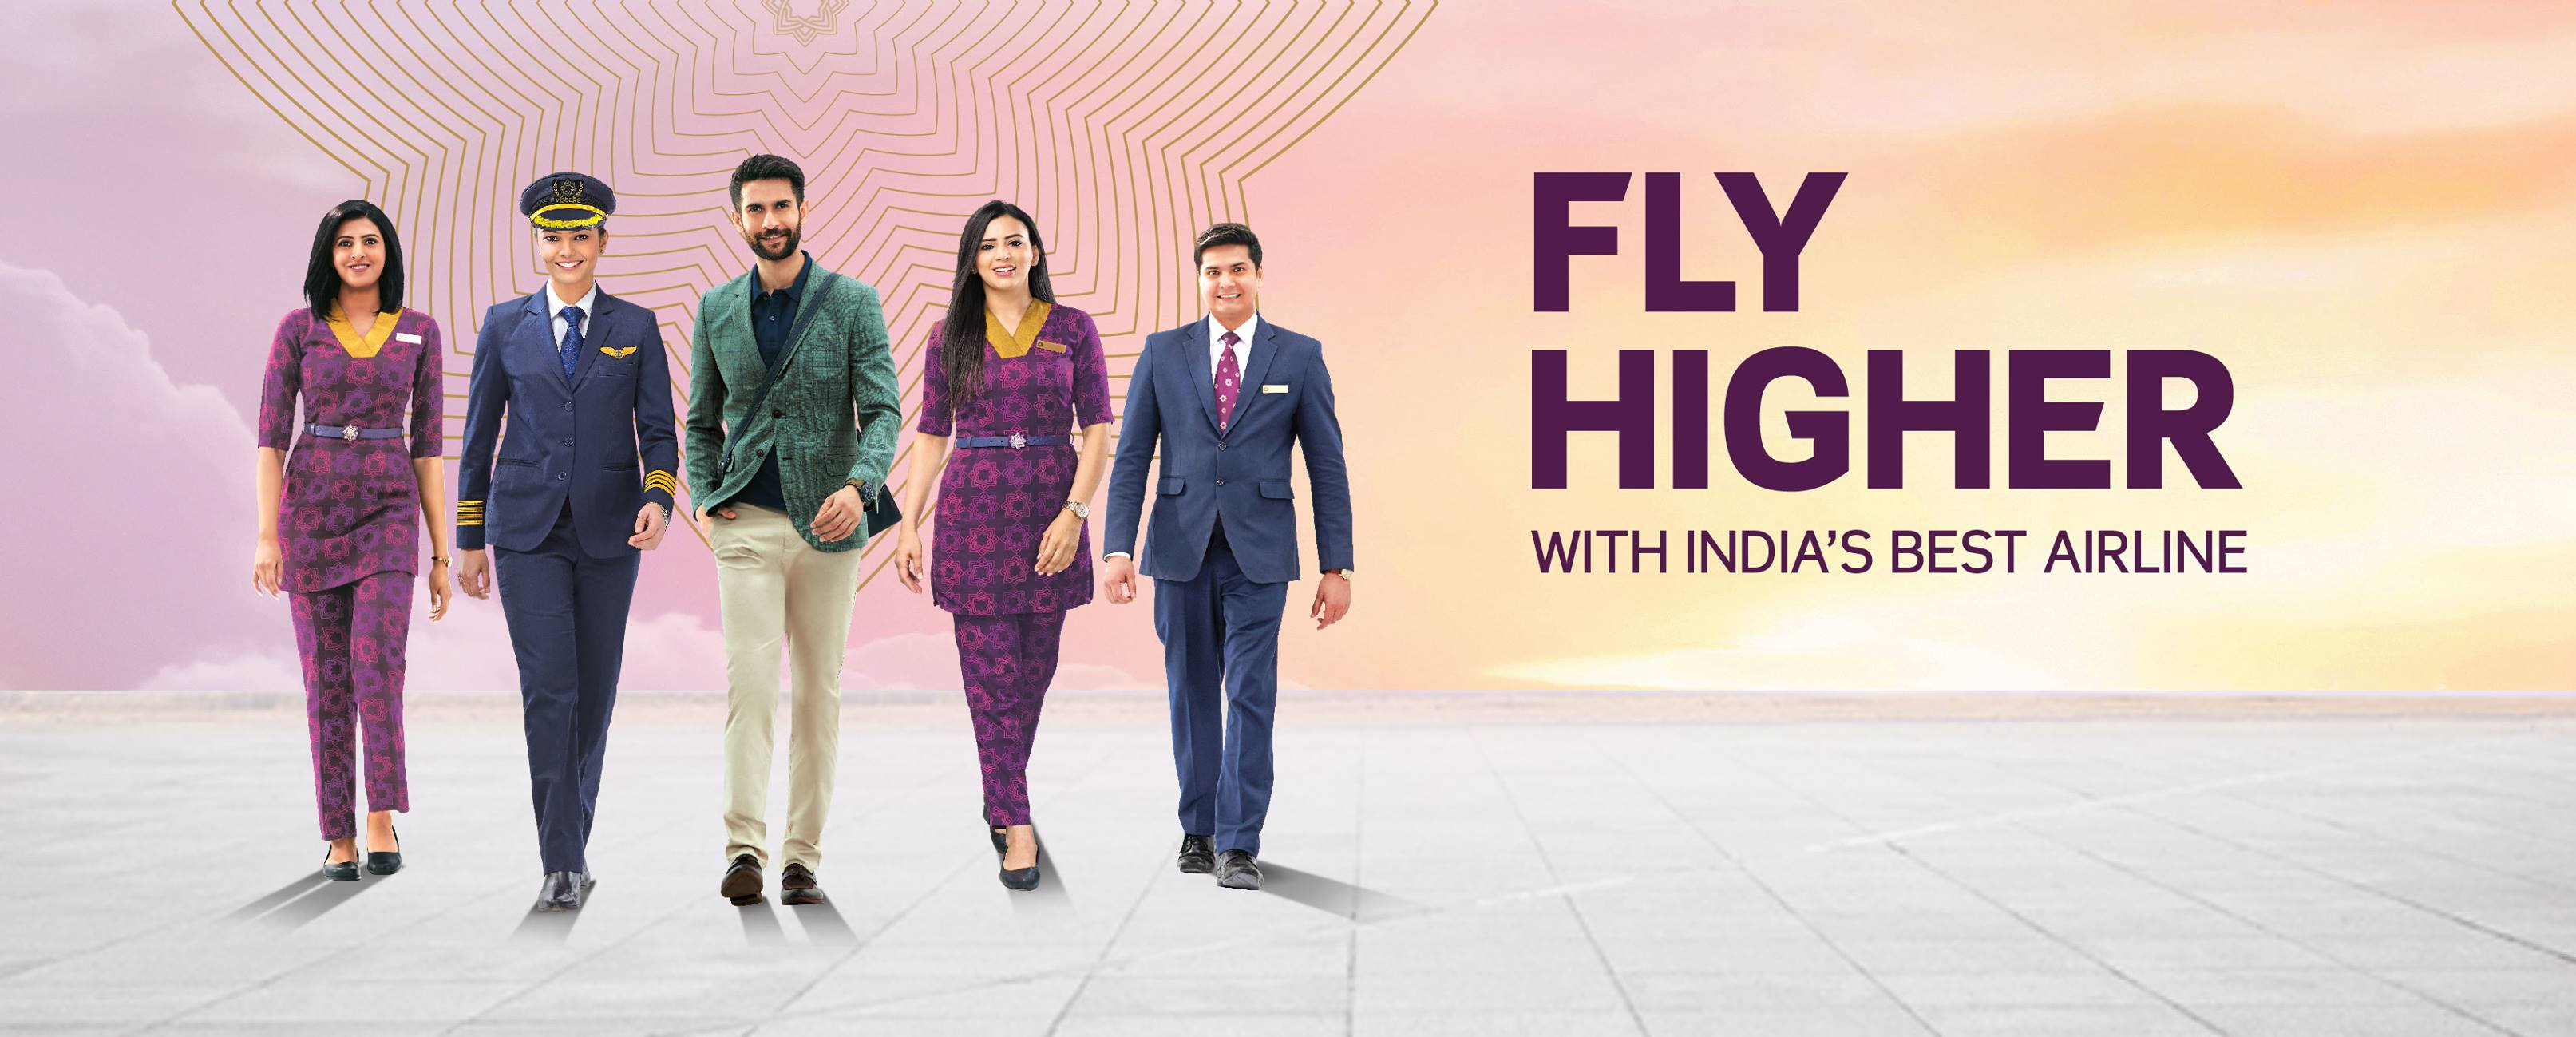 Vistara referral ID Earn 200 CV Points for a free upgrade - A person standing in front of a group of people posing for the camera - Vistara